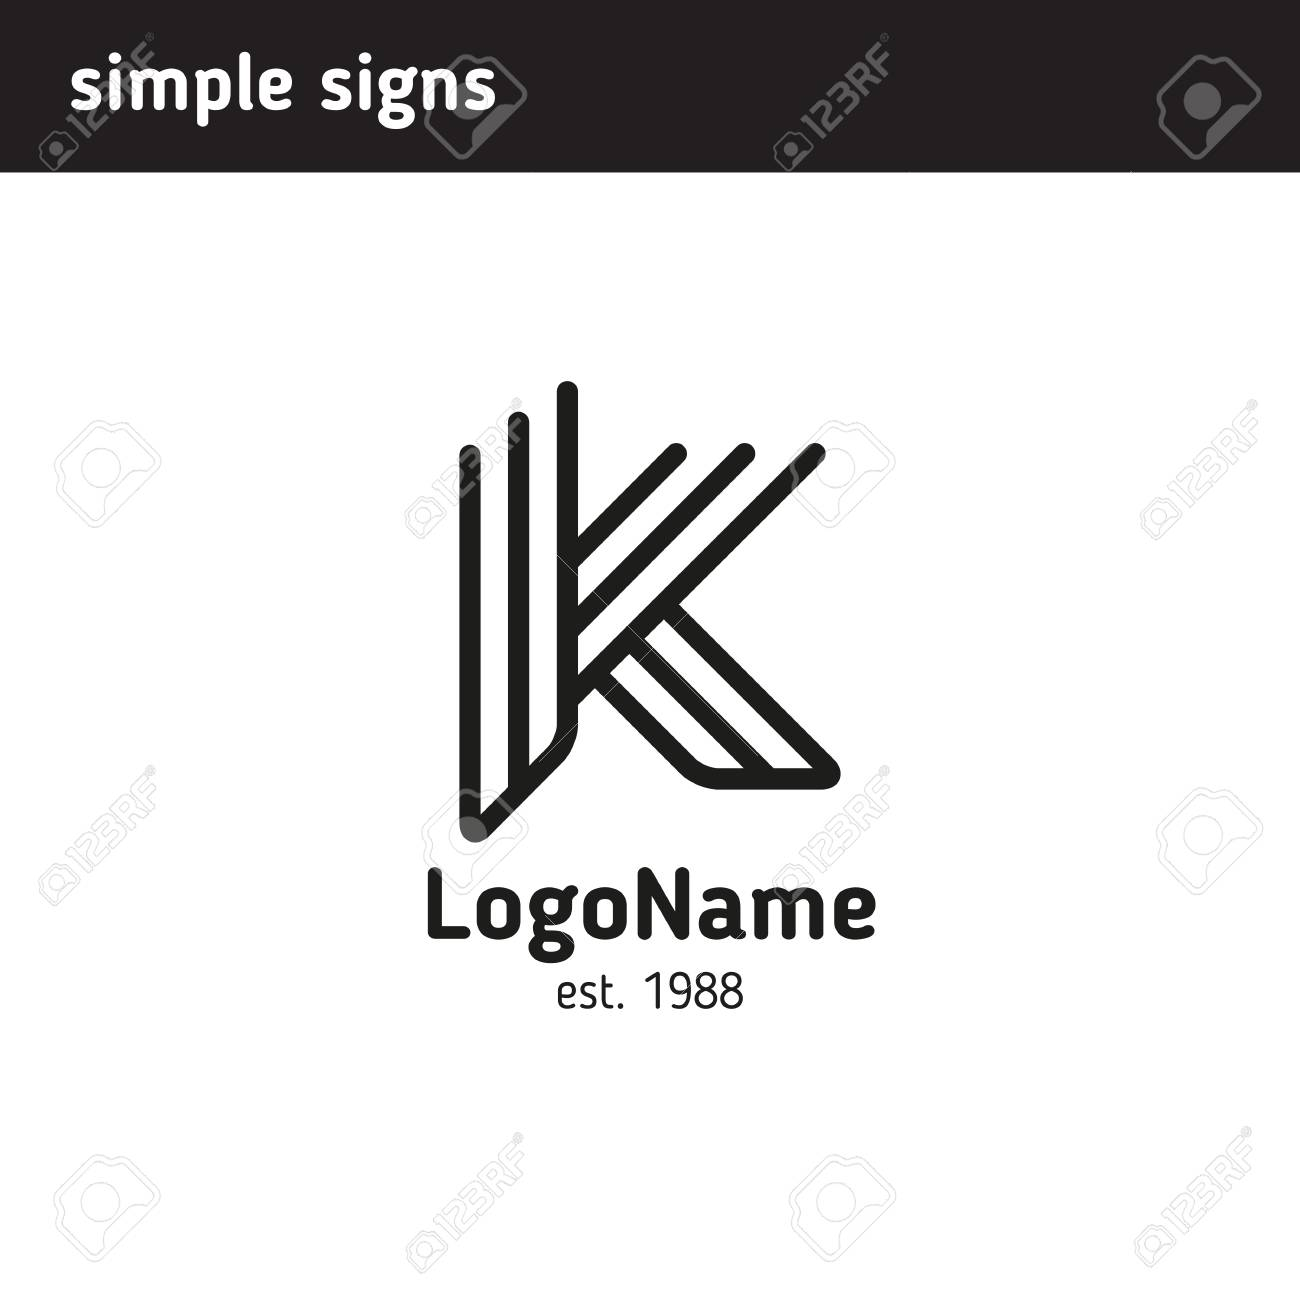 Linear Logo In The Form Of A Letter K Royalty Free Cliparts Vectors